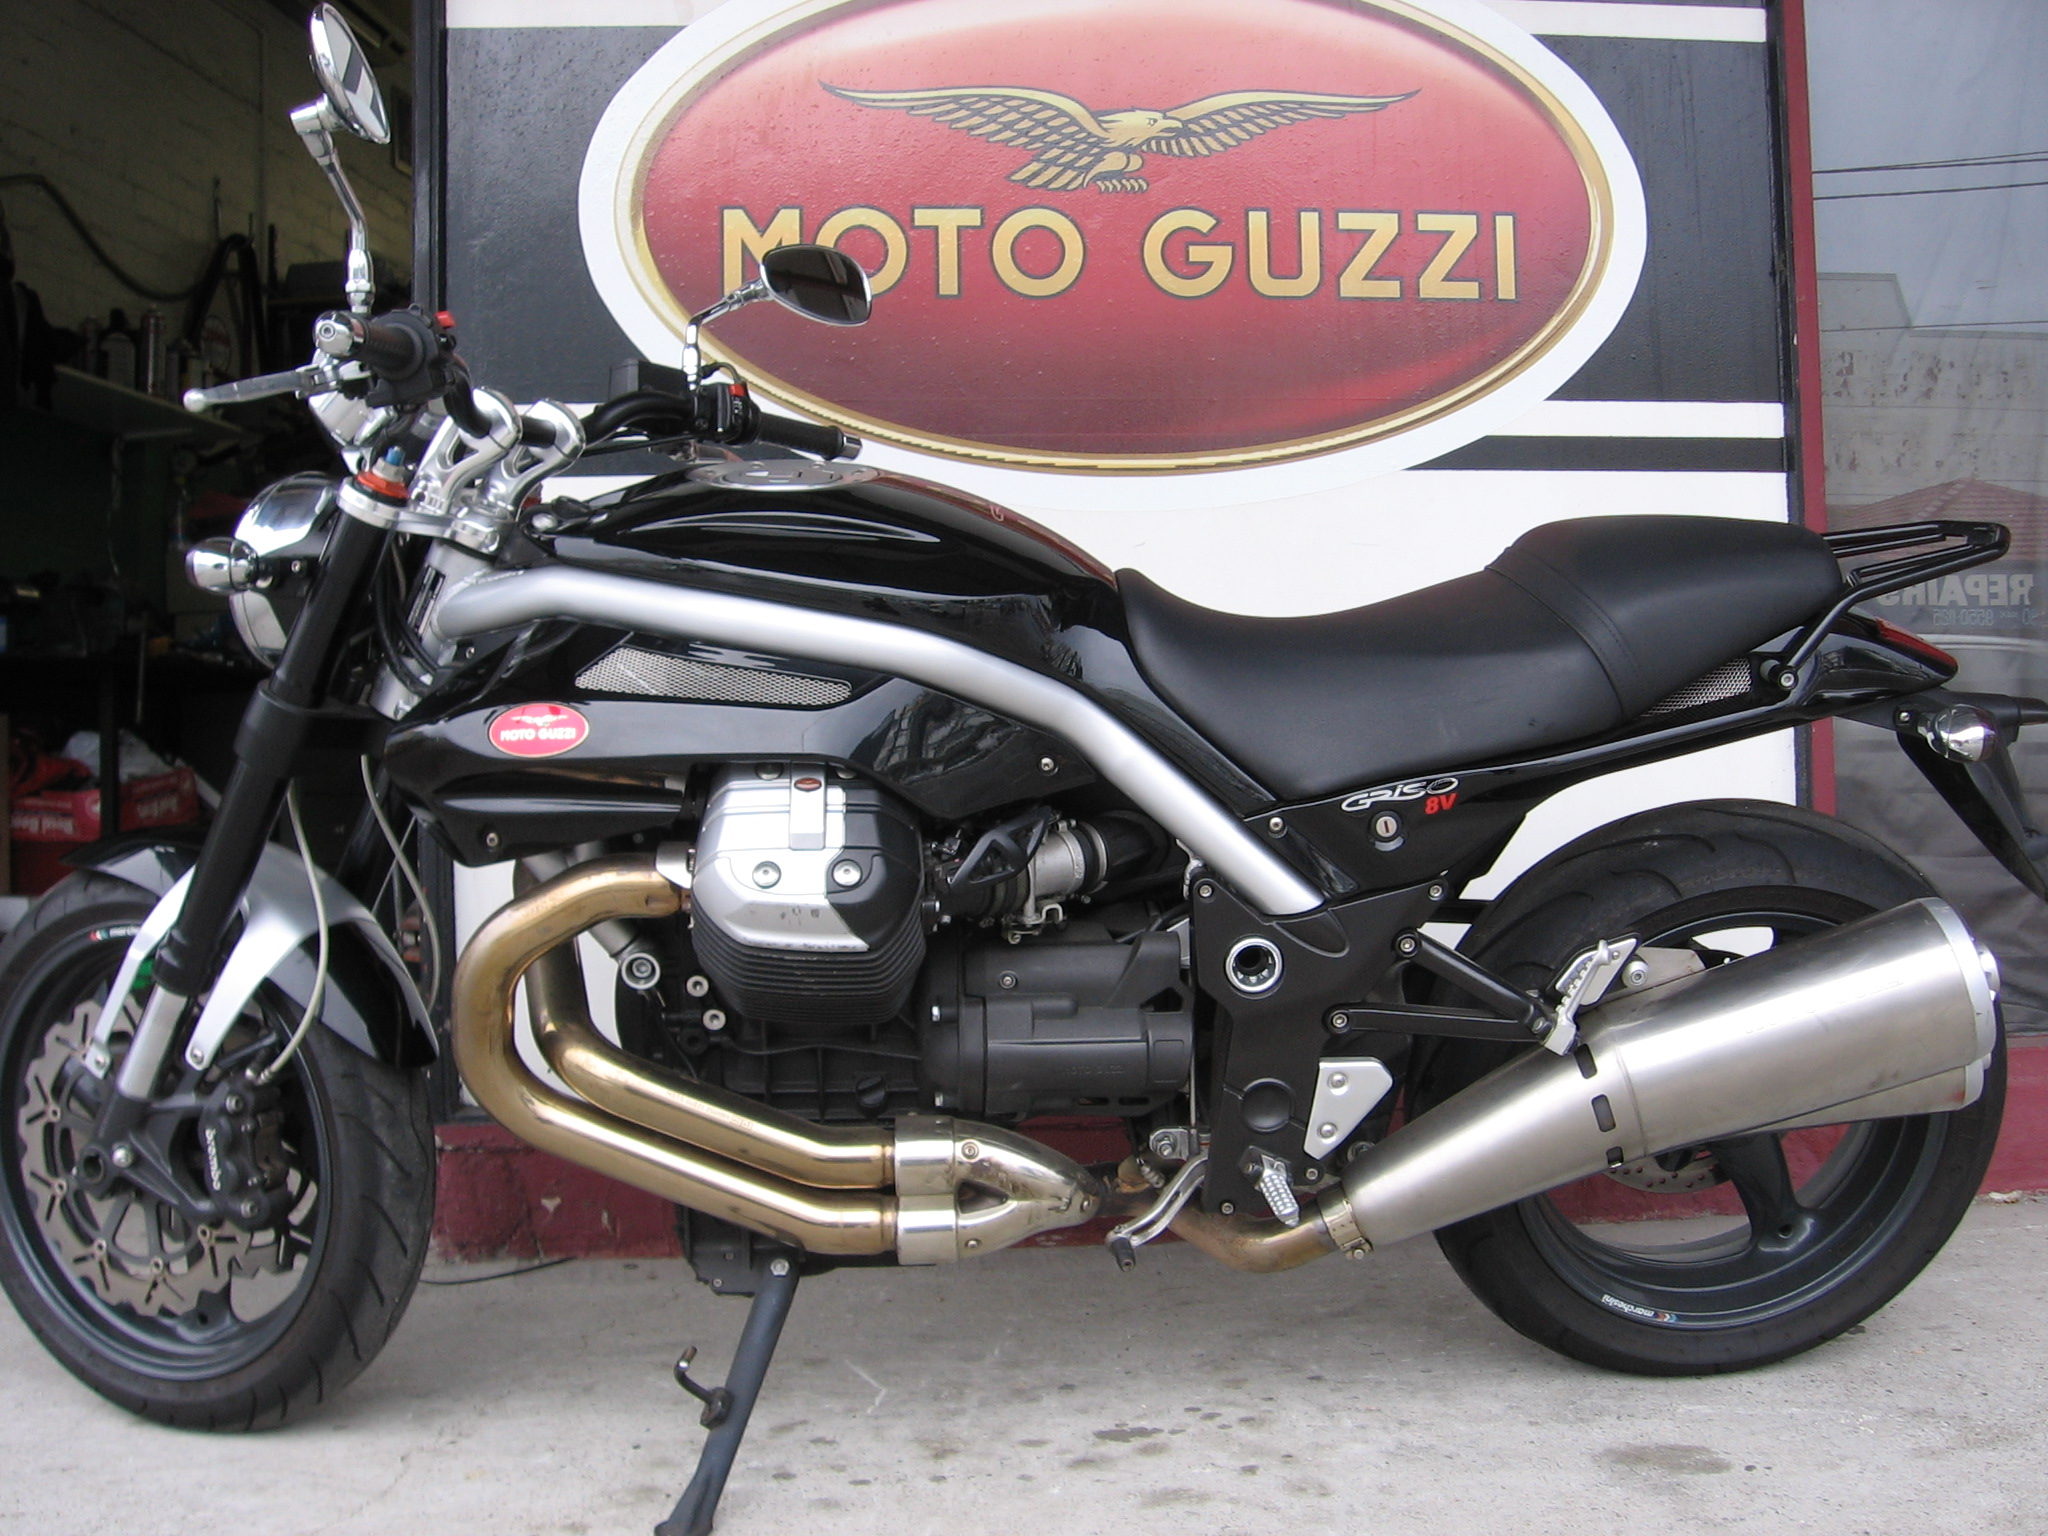 moto guzzi griso 1200 8v pics specs and list of seriess by year. Black Bedroom Furniture Sets. Home Design Ideas